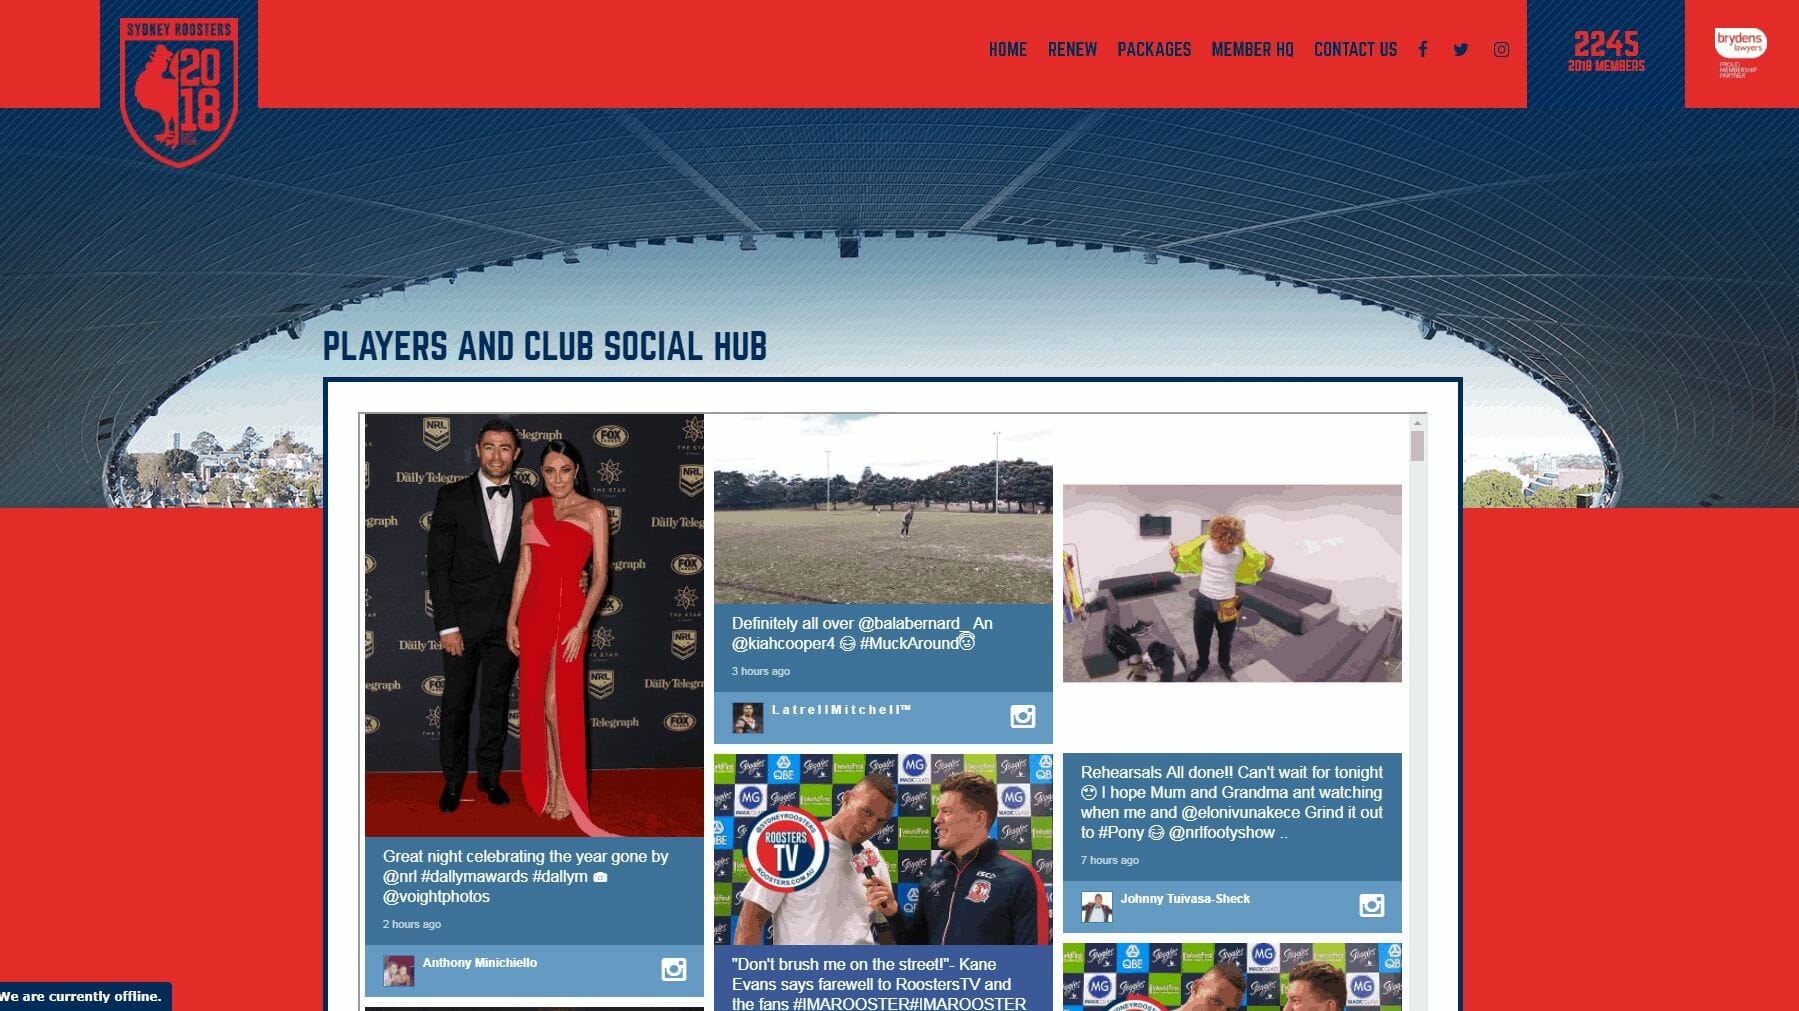 Advertise Me Social Wall Sydney Roosters Client Header Membership Site e1566868229664